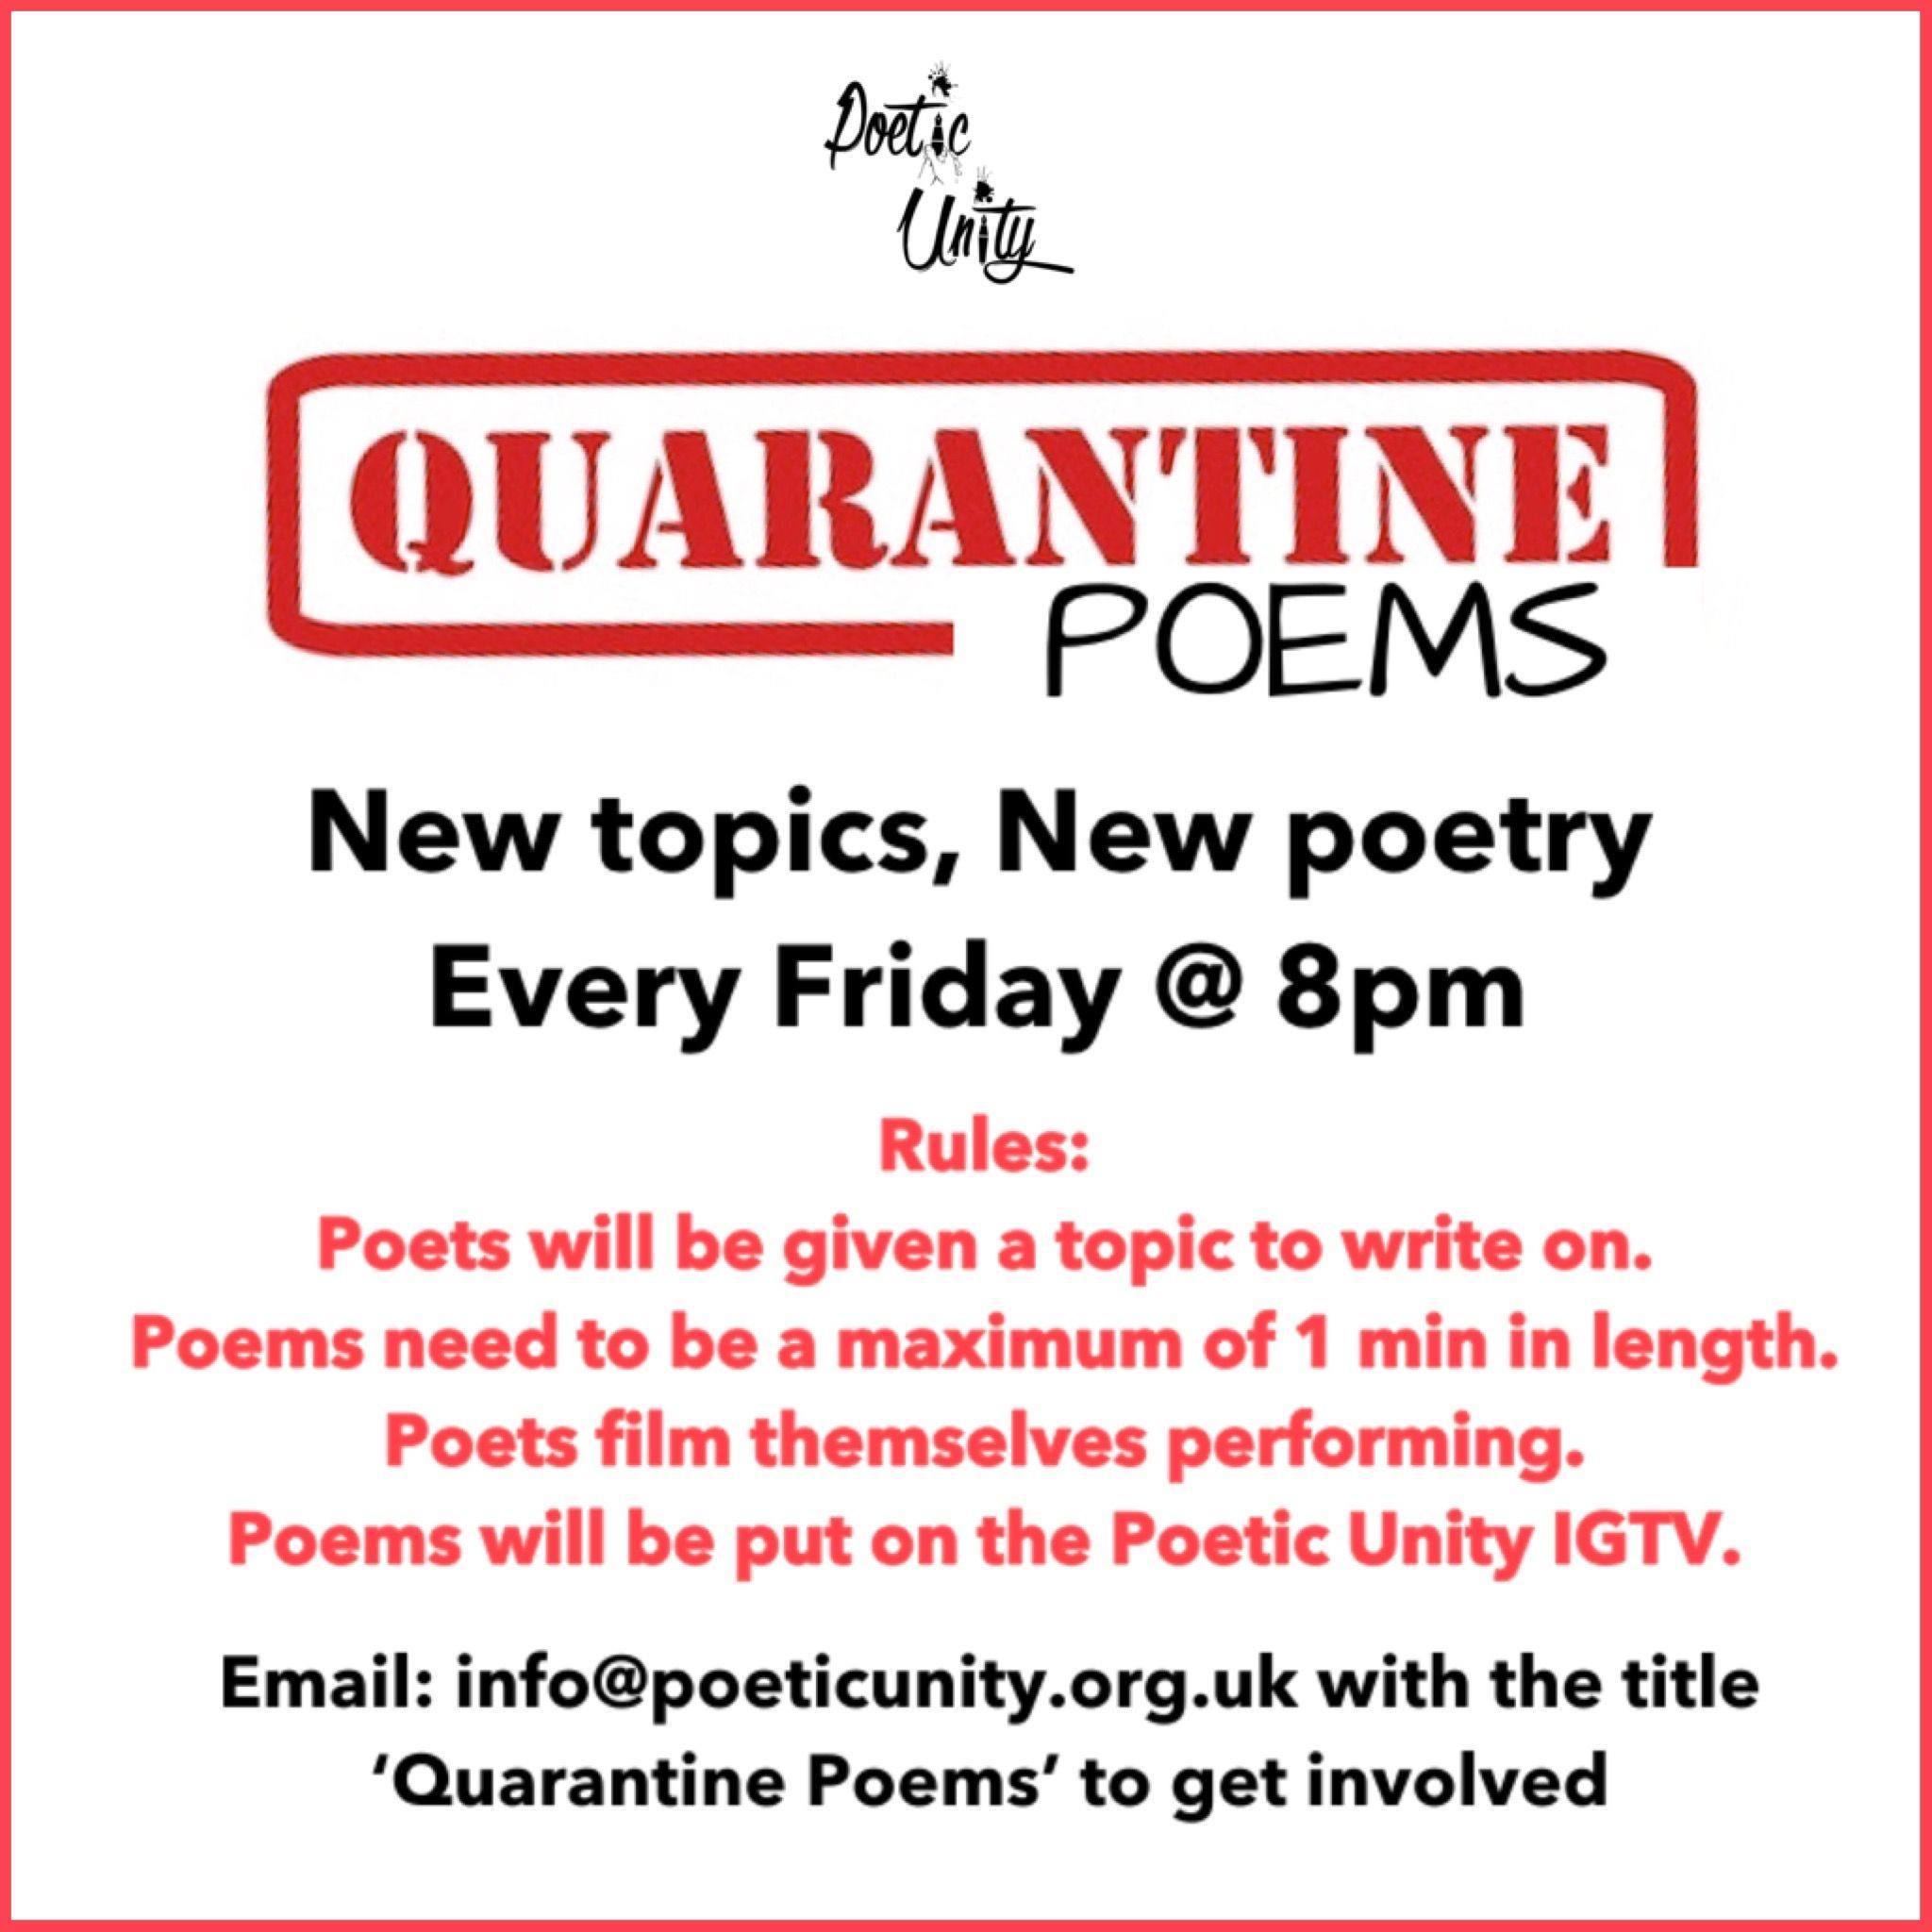 Charity Launches Quarantine Poems Brixton Blog Go ahead and give one a try! charity launches quarantine poems